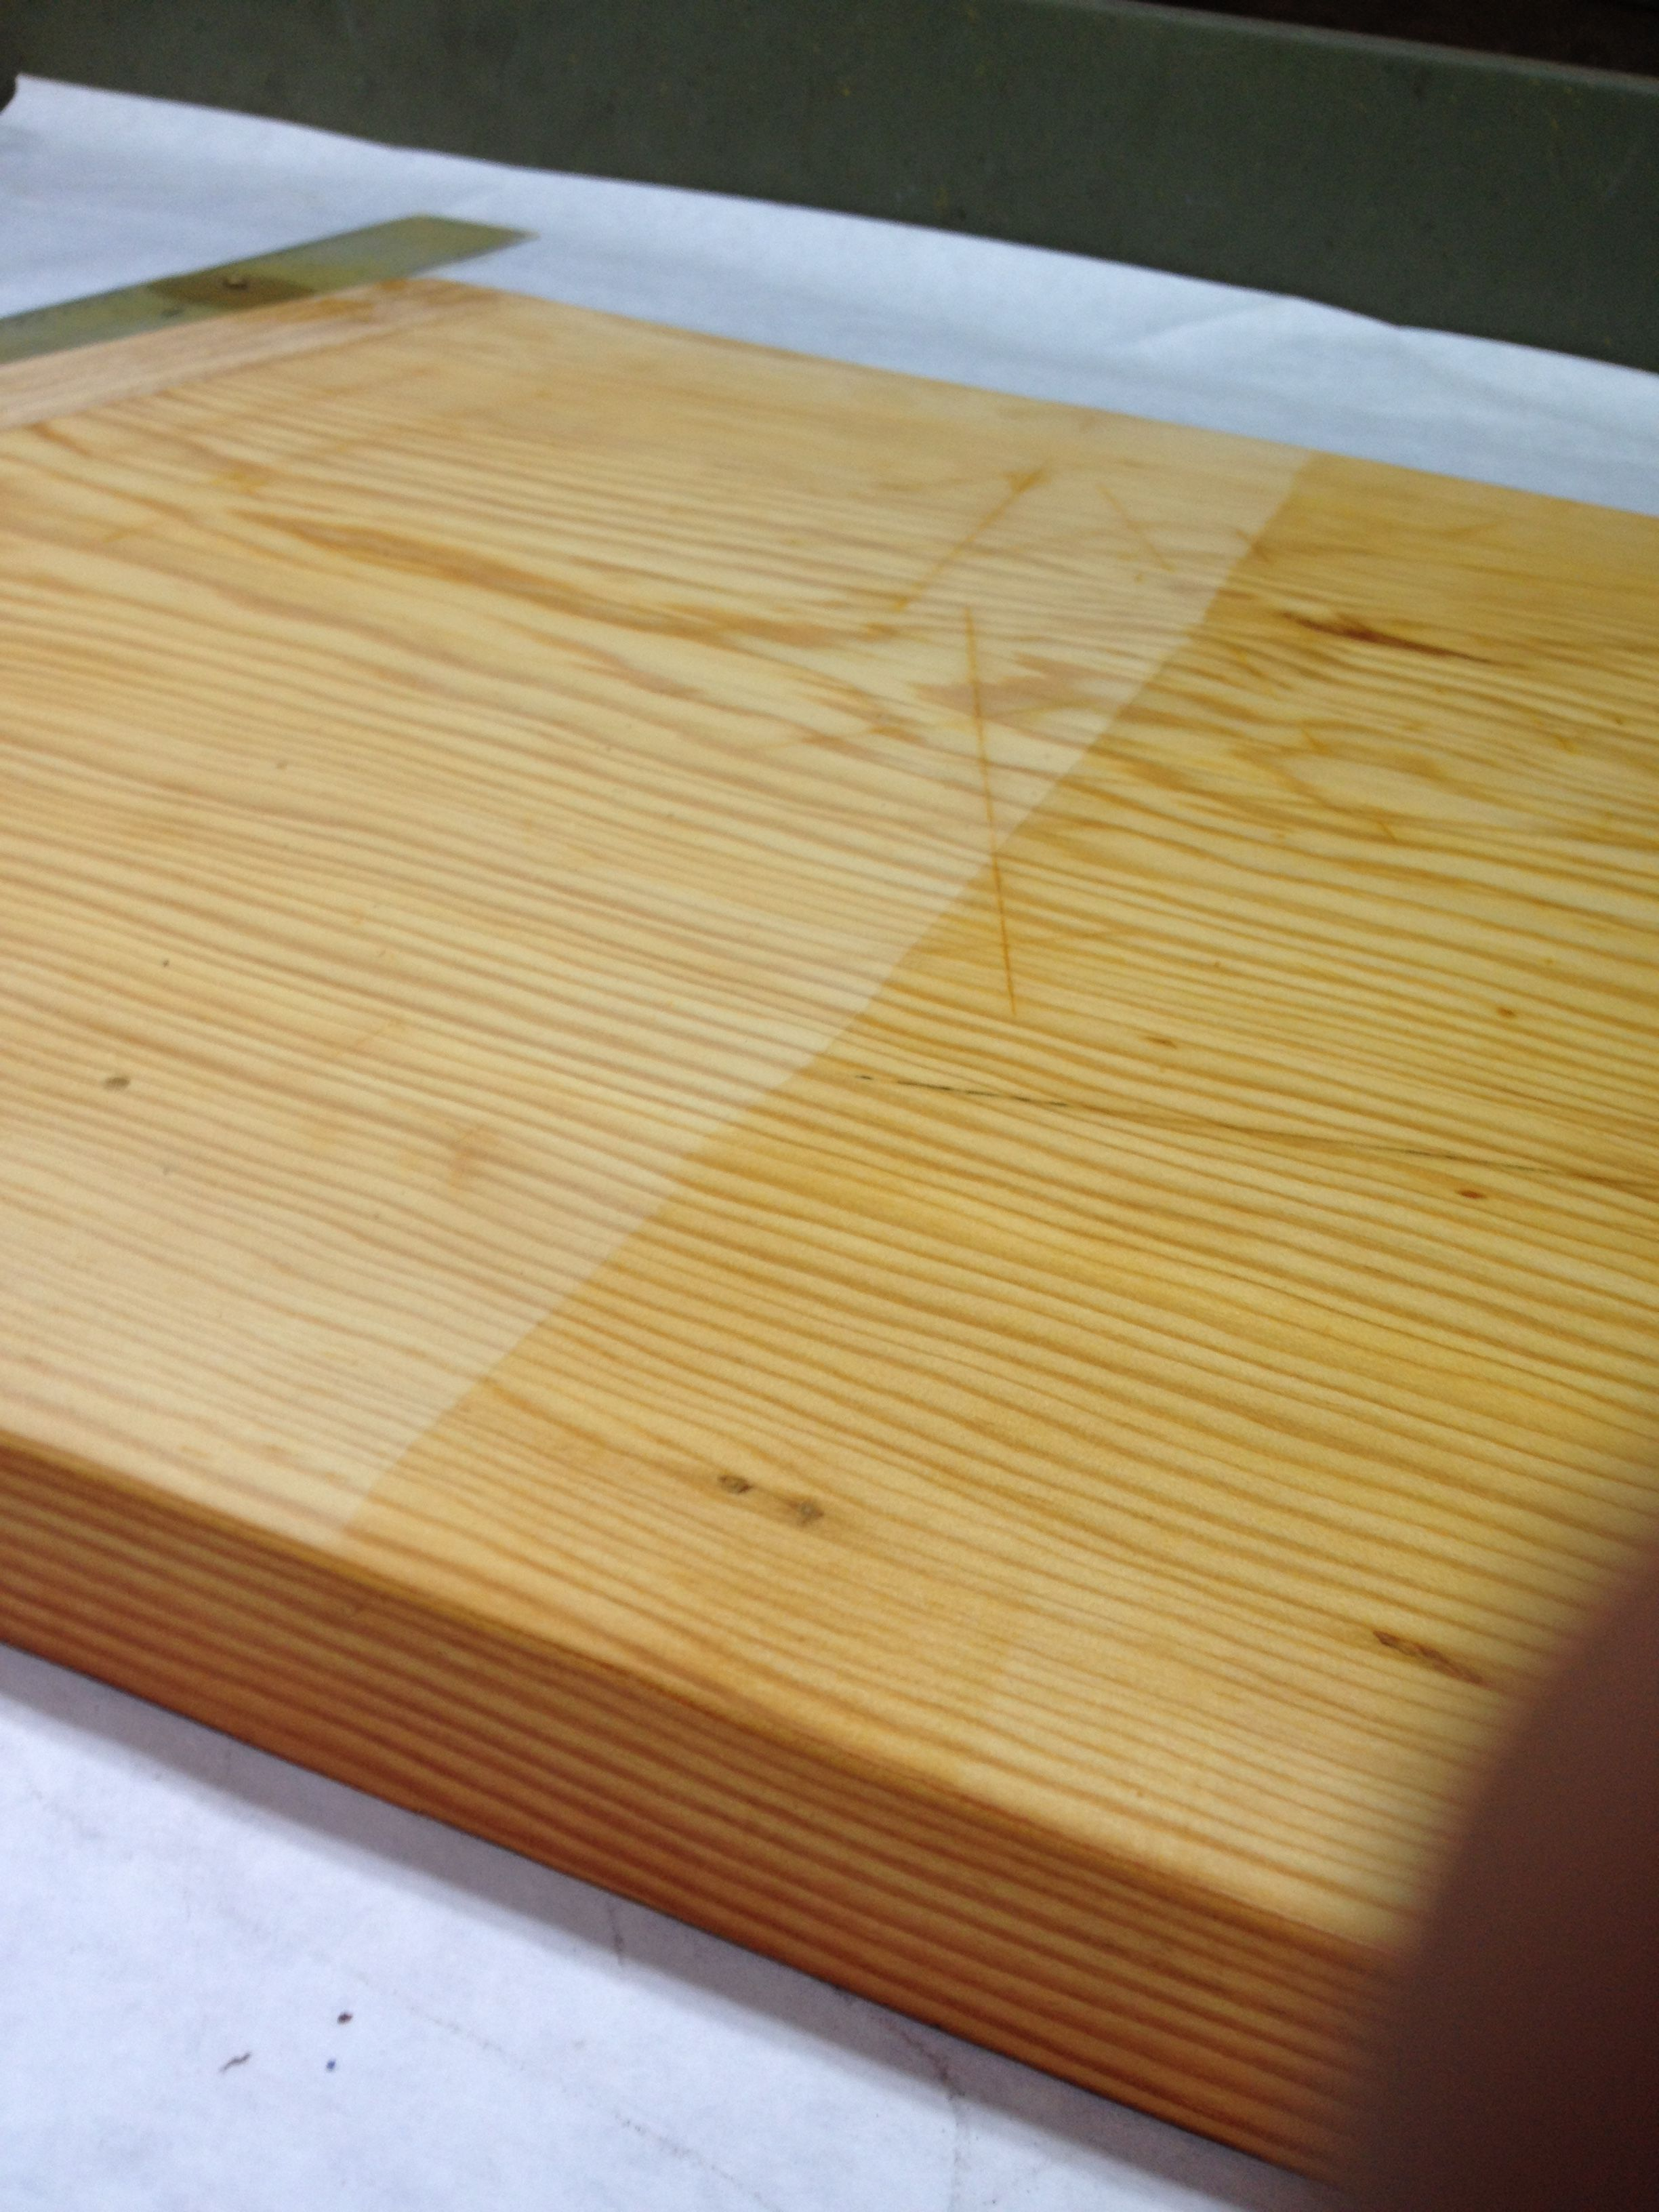 Chopping Board Restoring Lying Mineral Oil After Finish Sanding